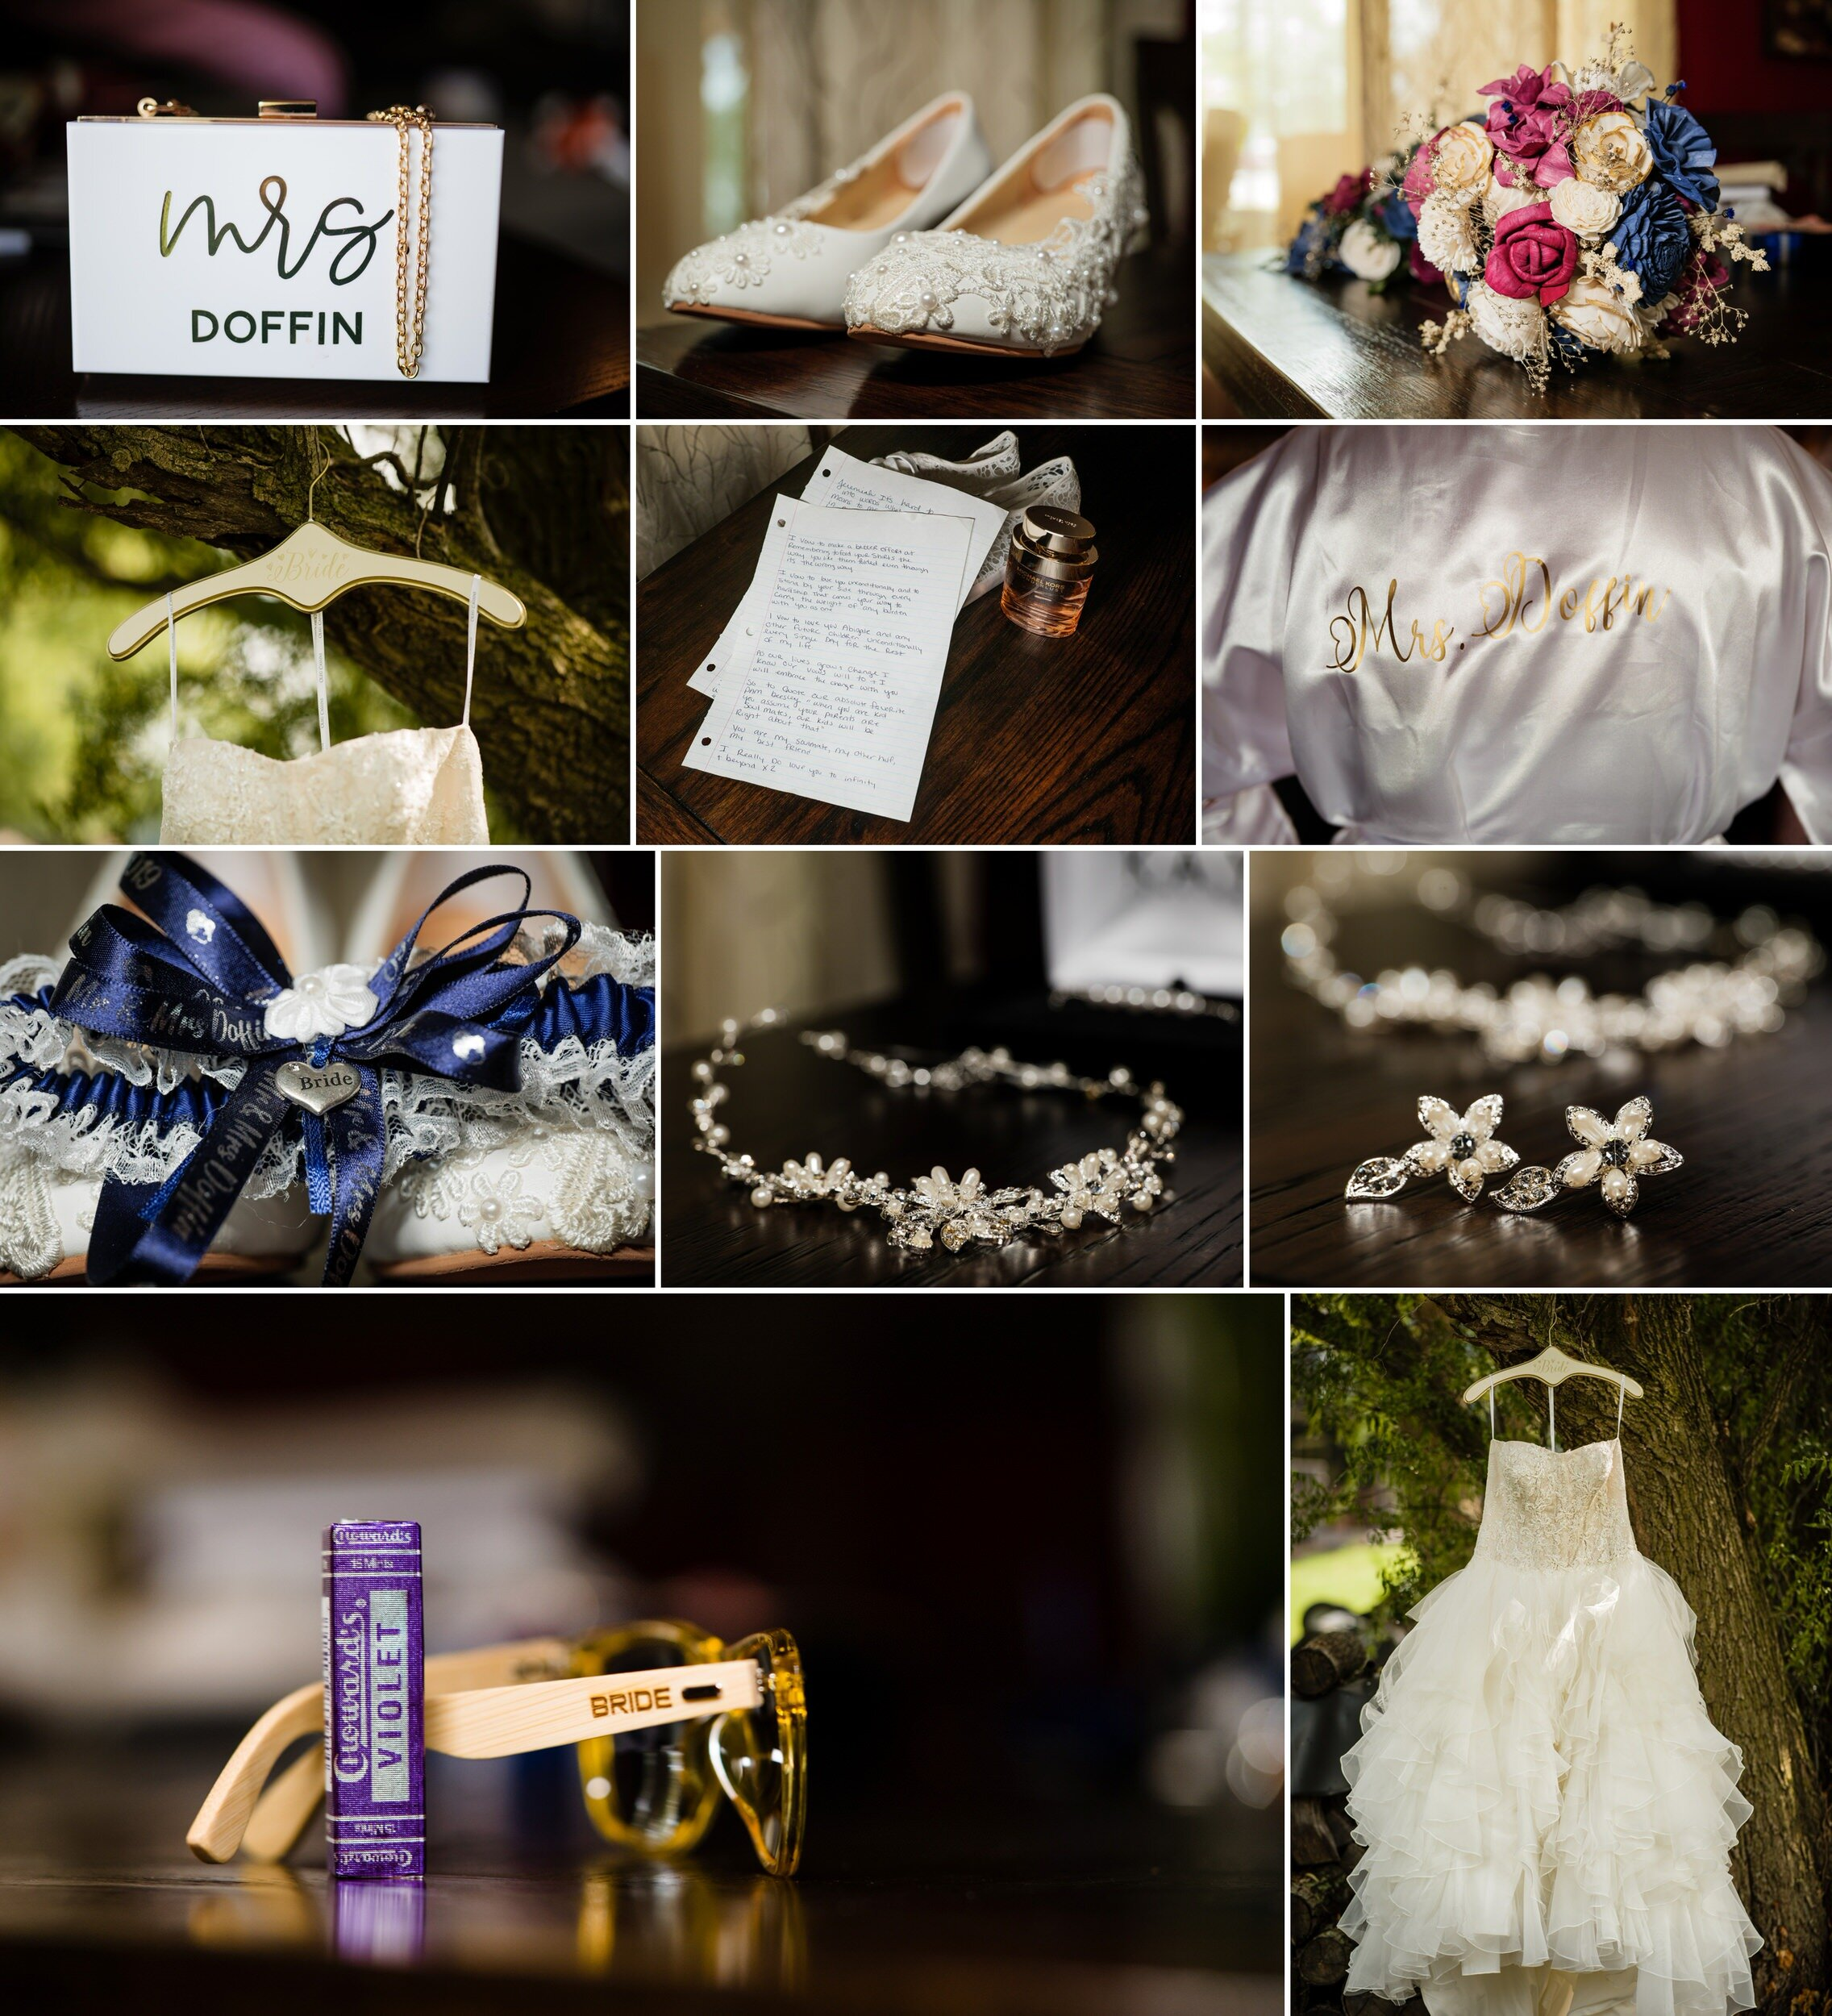 Bridal details for a wedding at Avalon Manor.